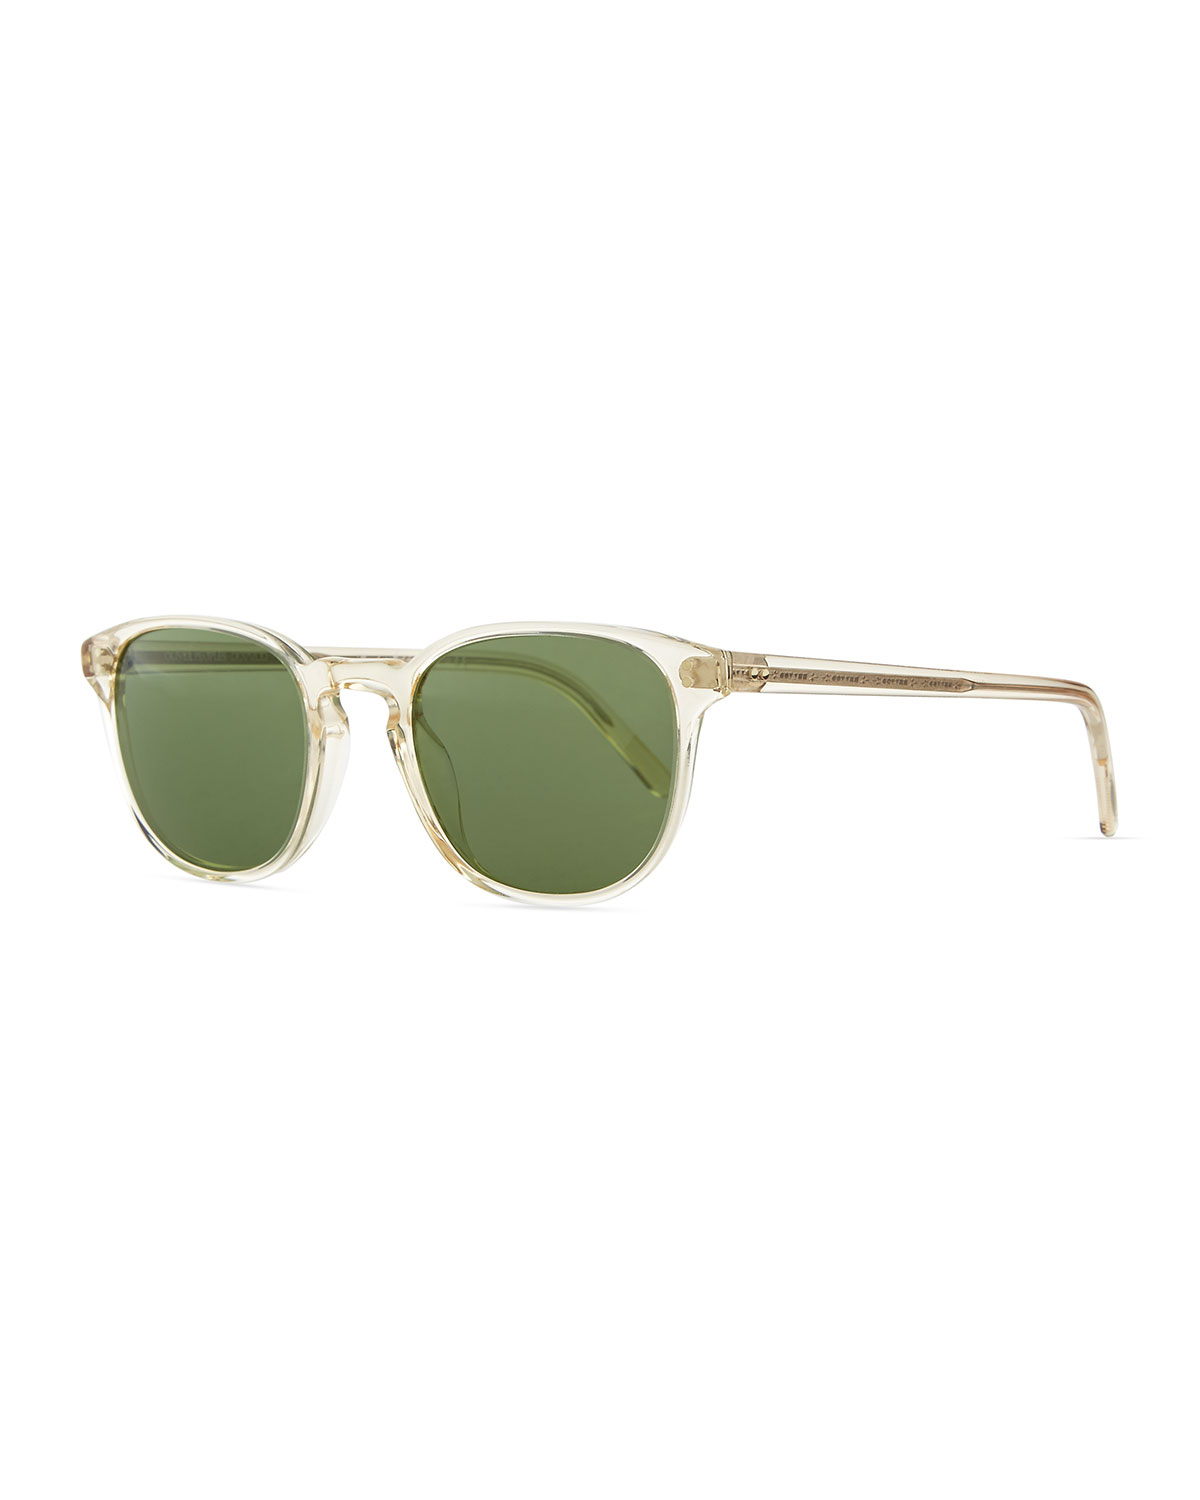 Oliver Peoples Sunglasses FAIRMONT MEN'S ACETATE SUNGLASSES, YELLOW